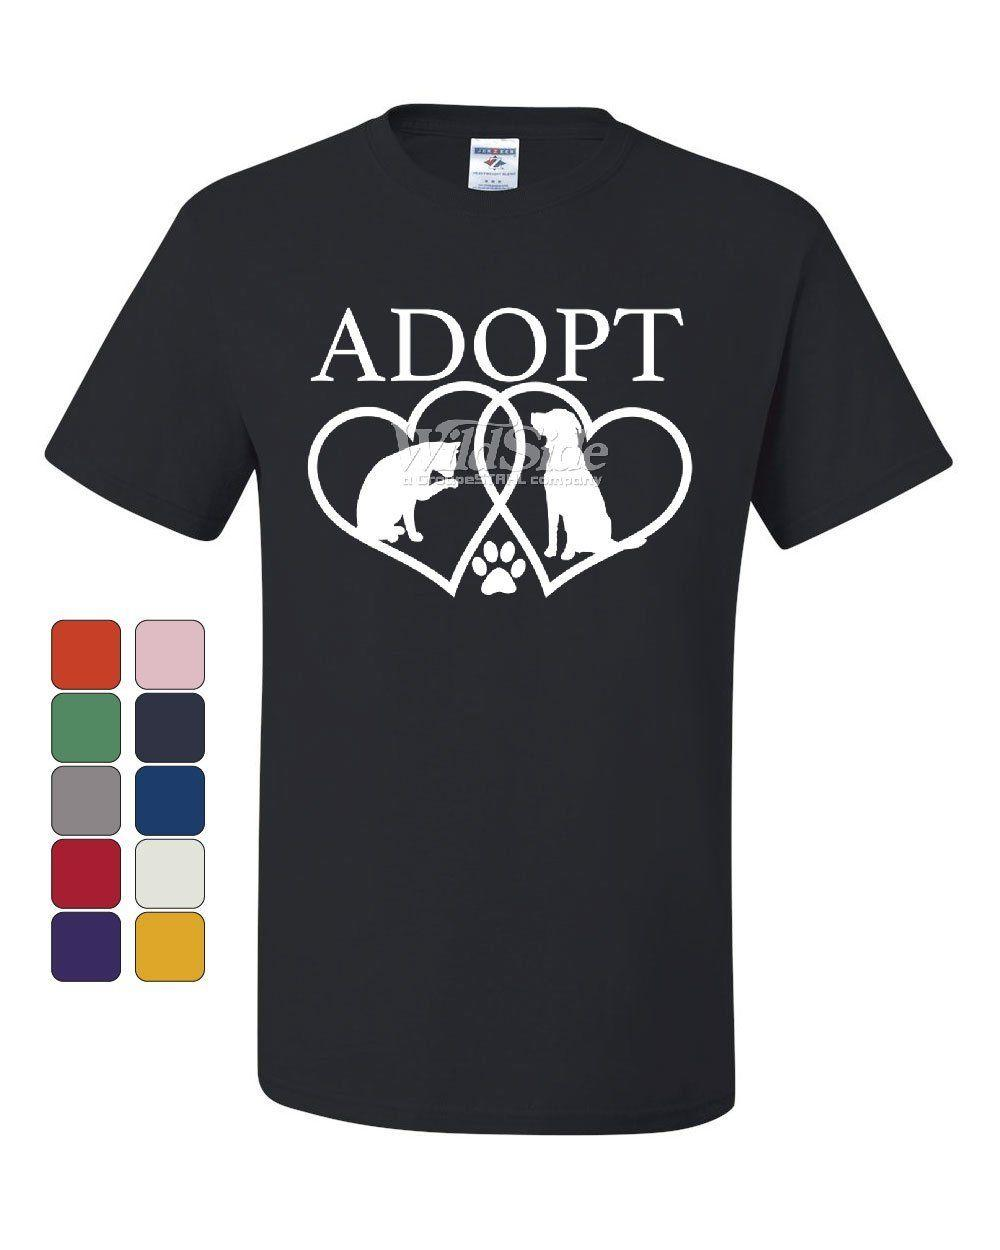 5c28eab5c870 Adopt Pets T Shirt Cat Dog Kitten Puppy Adoption Animal Rescue Tee  ShirtFunny Unisex Casual Tshirt Gift One Day Only T Shirts Limited T Shirts  24 Hours From ...